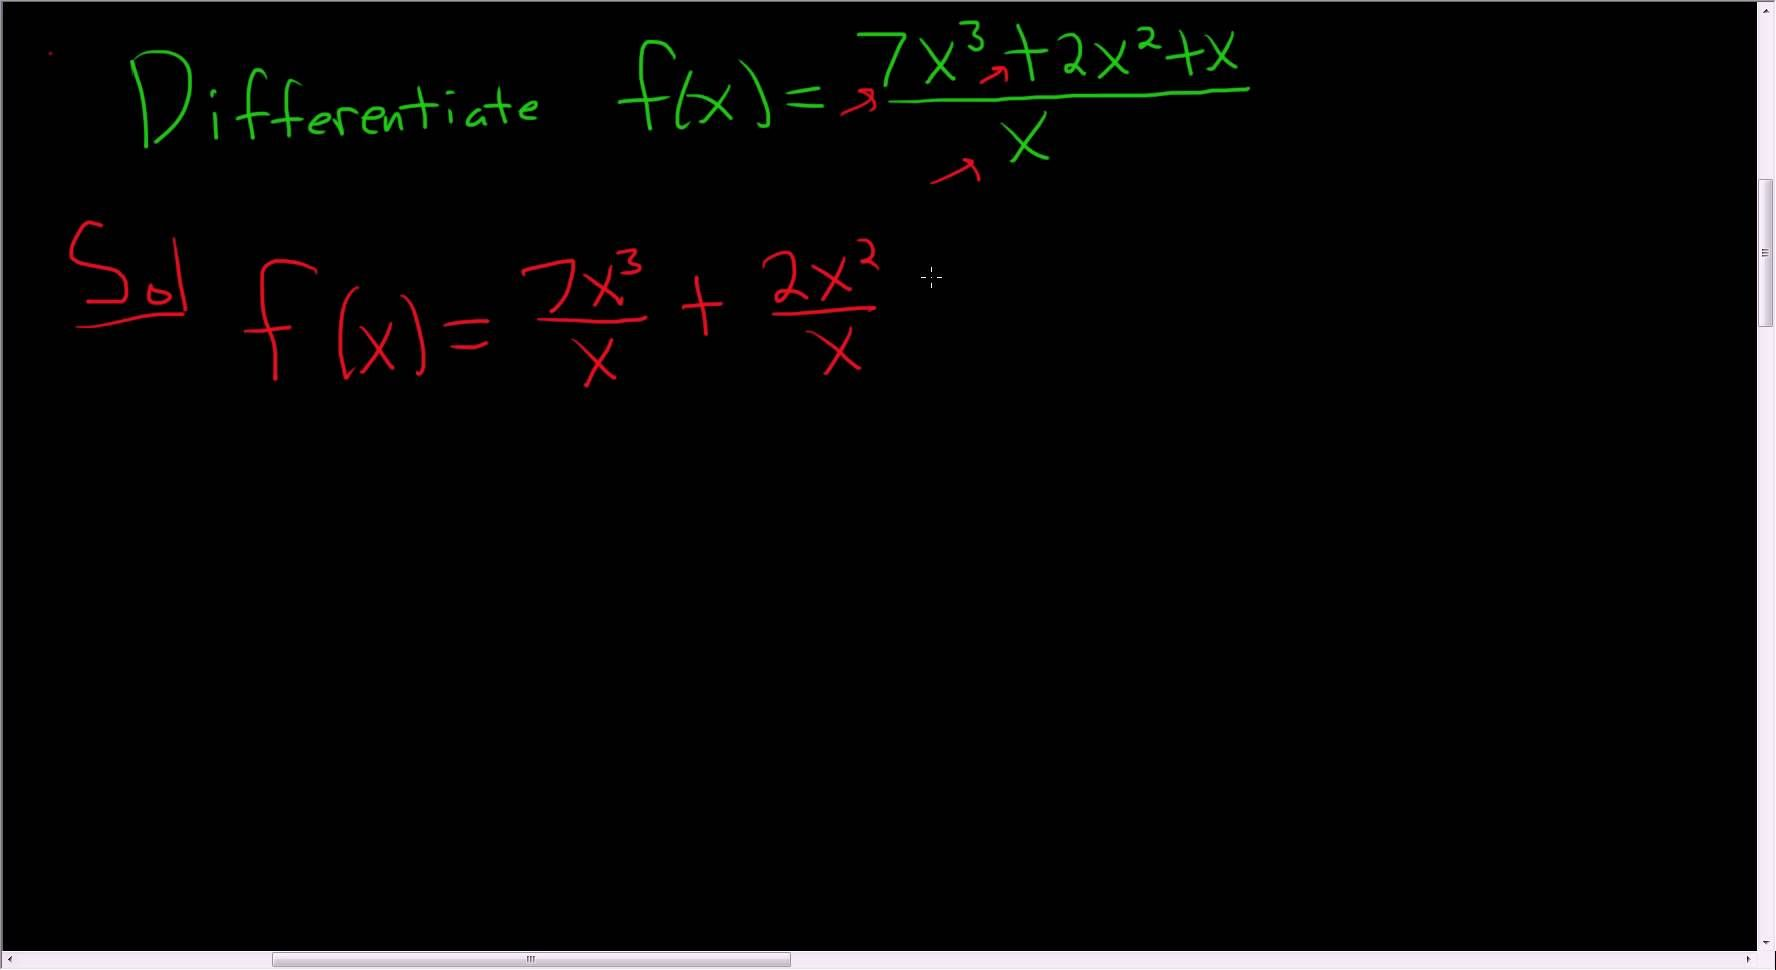 Finding the derivative of fx 7x3 2x2 xx